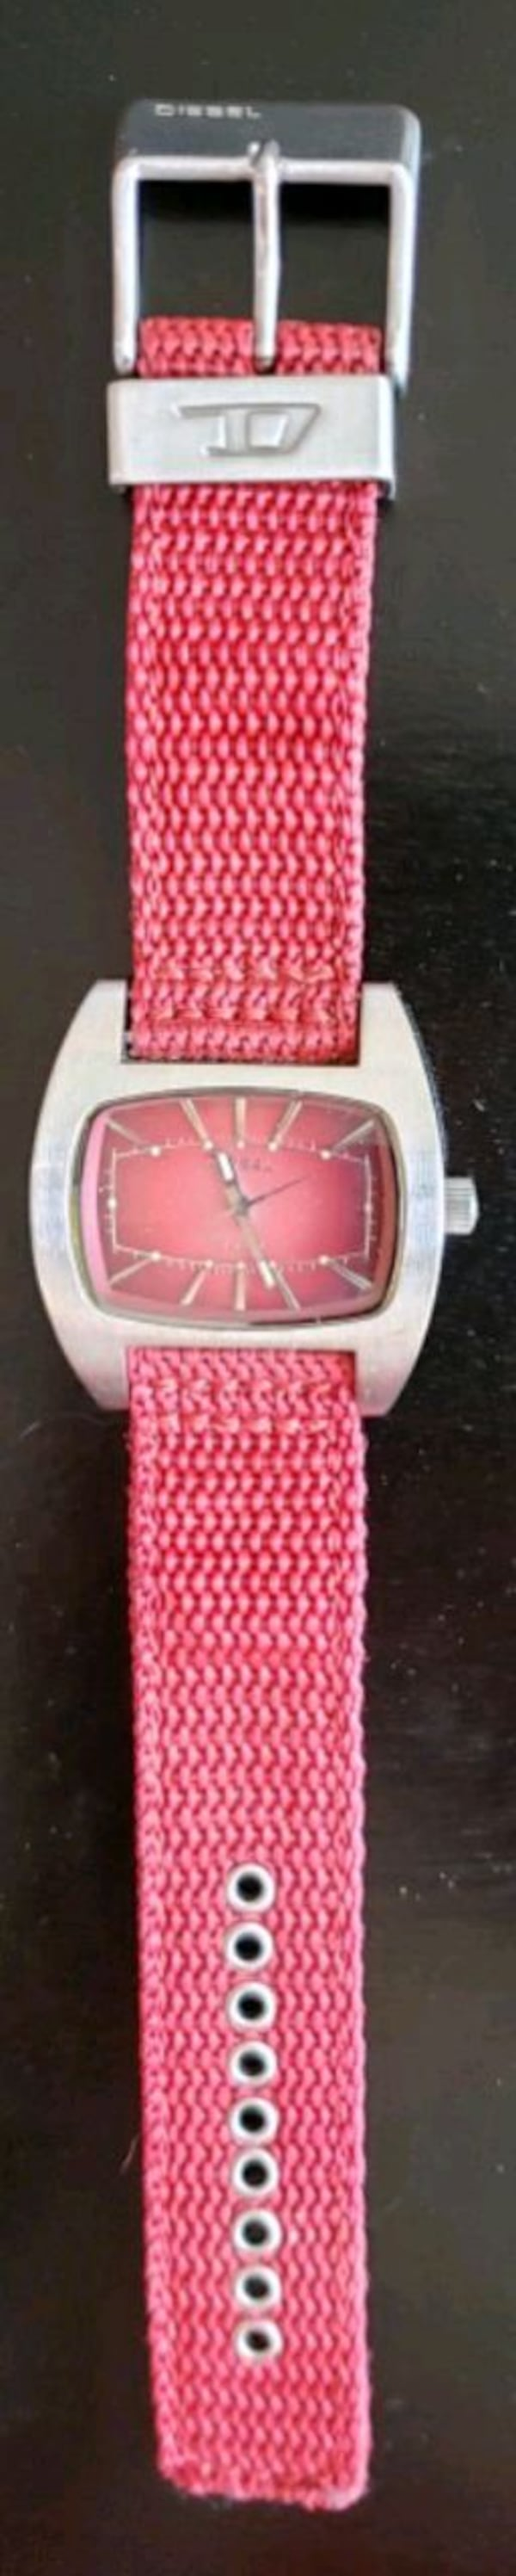 Diesel Watch DZ-2052 solid stainless steel Red Can 169b132a-2ebf-4723-8488-b7e57f474273